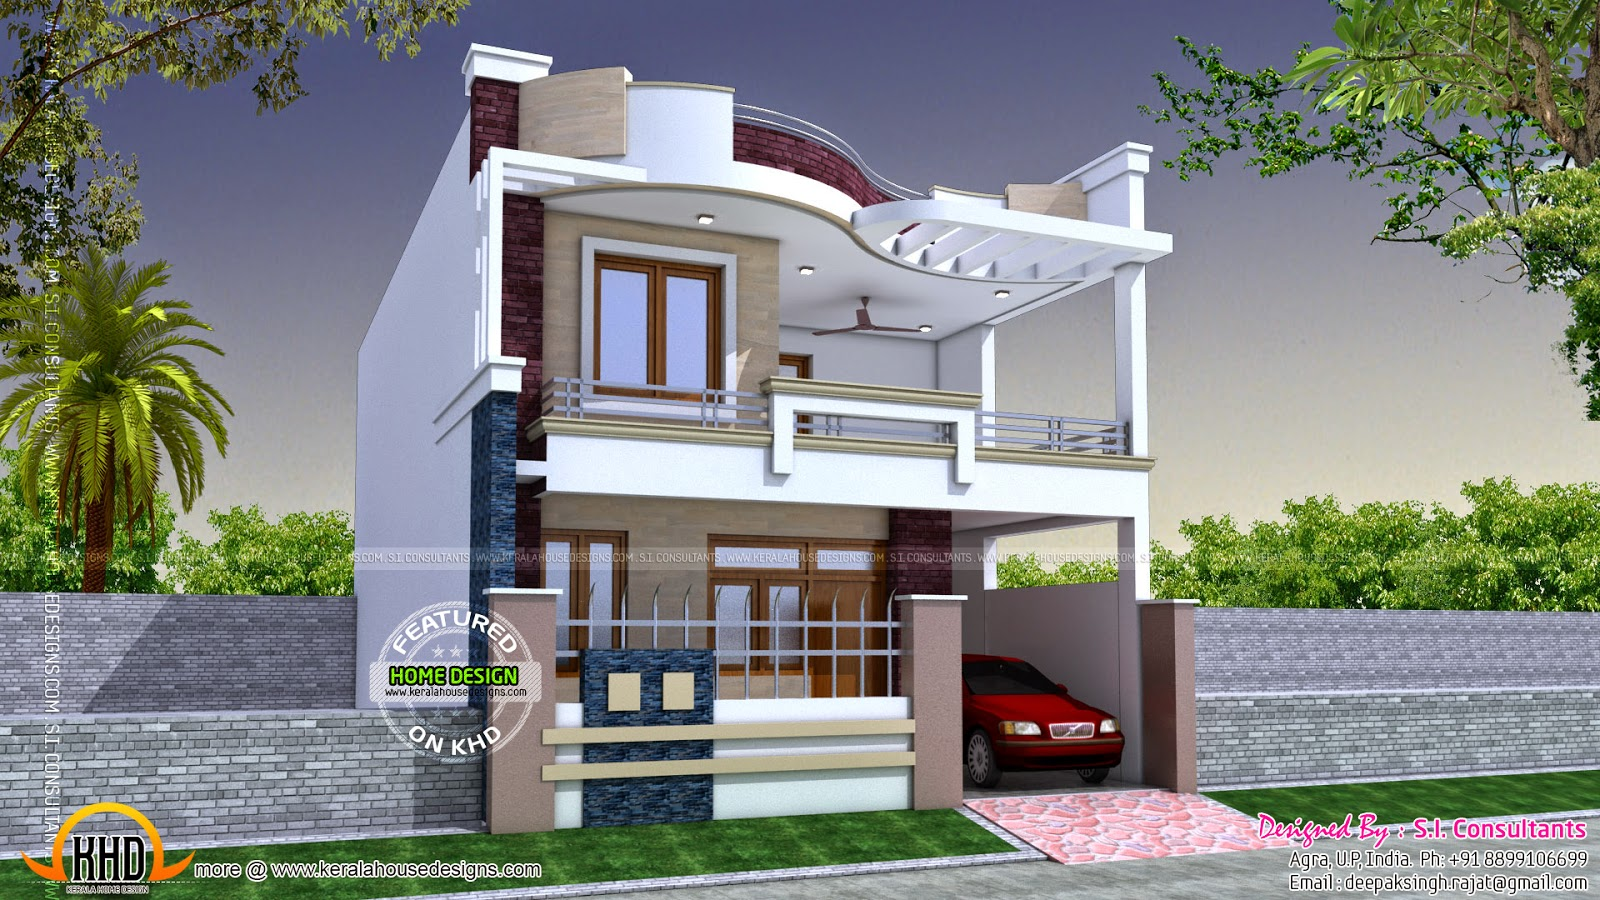 Modern indian home design kerala home design and floor plans Home design